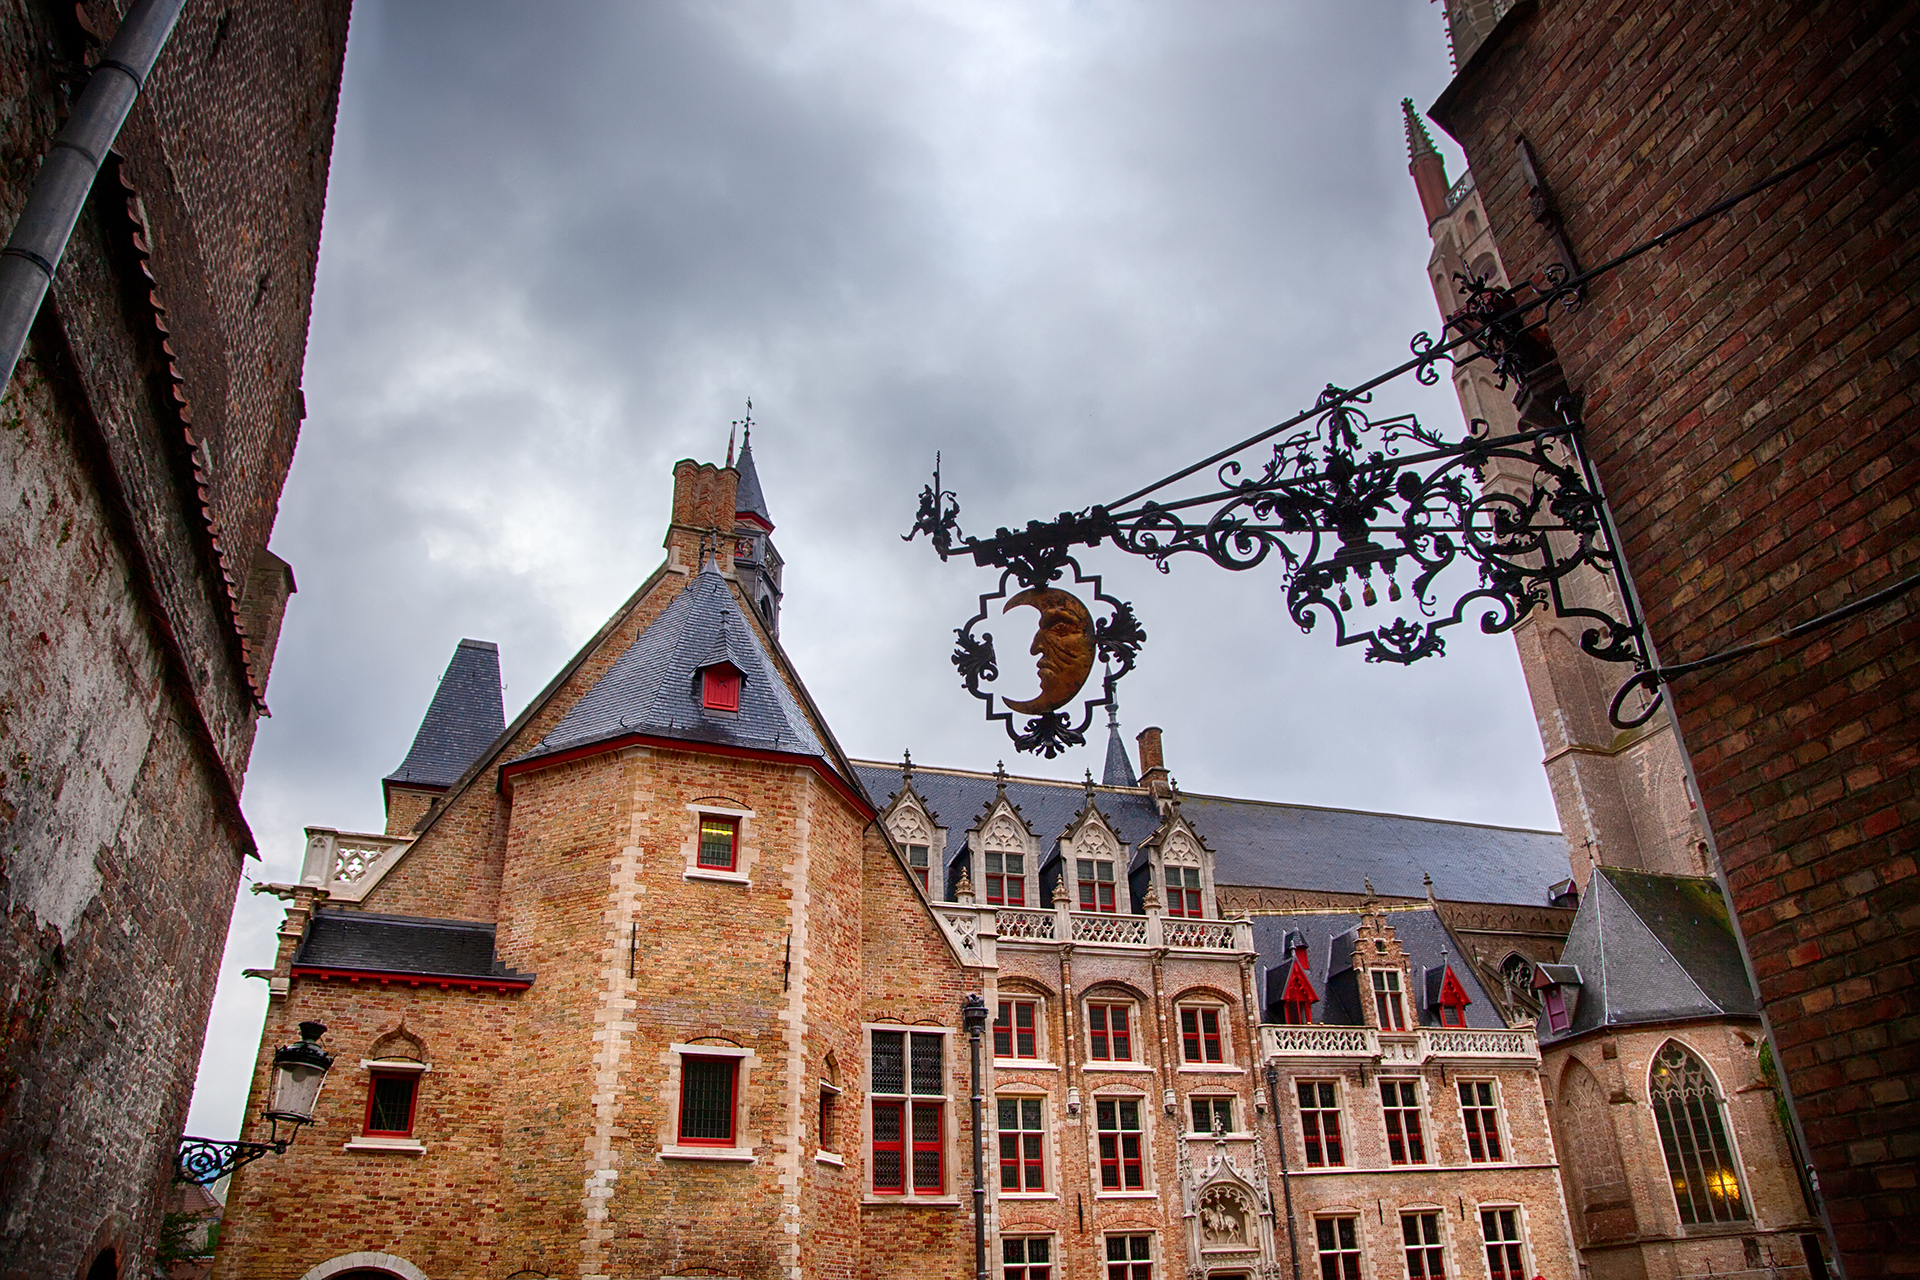 Typical house of bruges